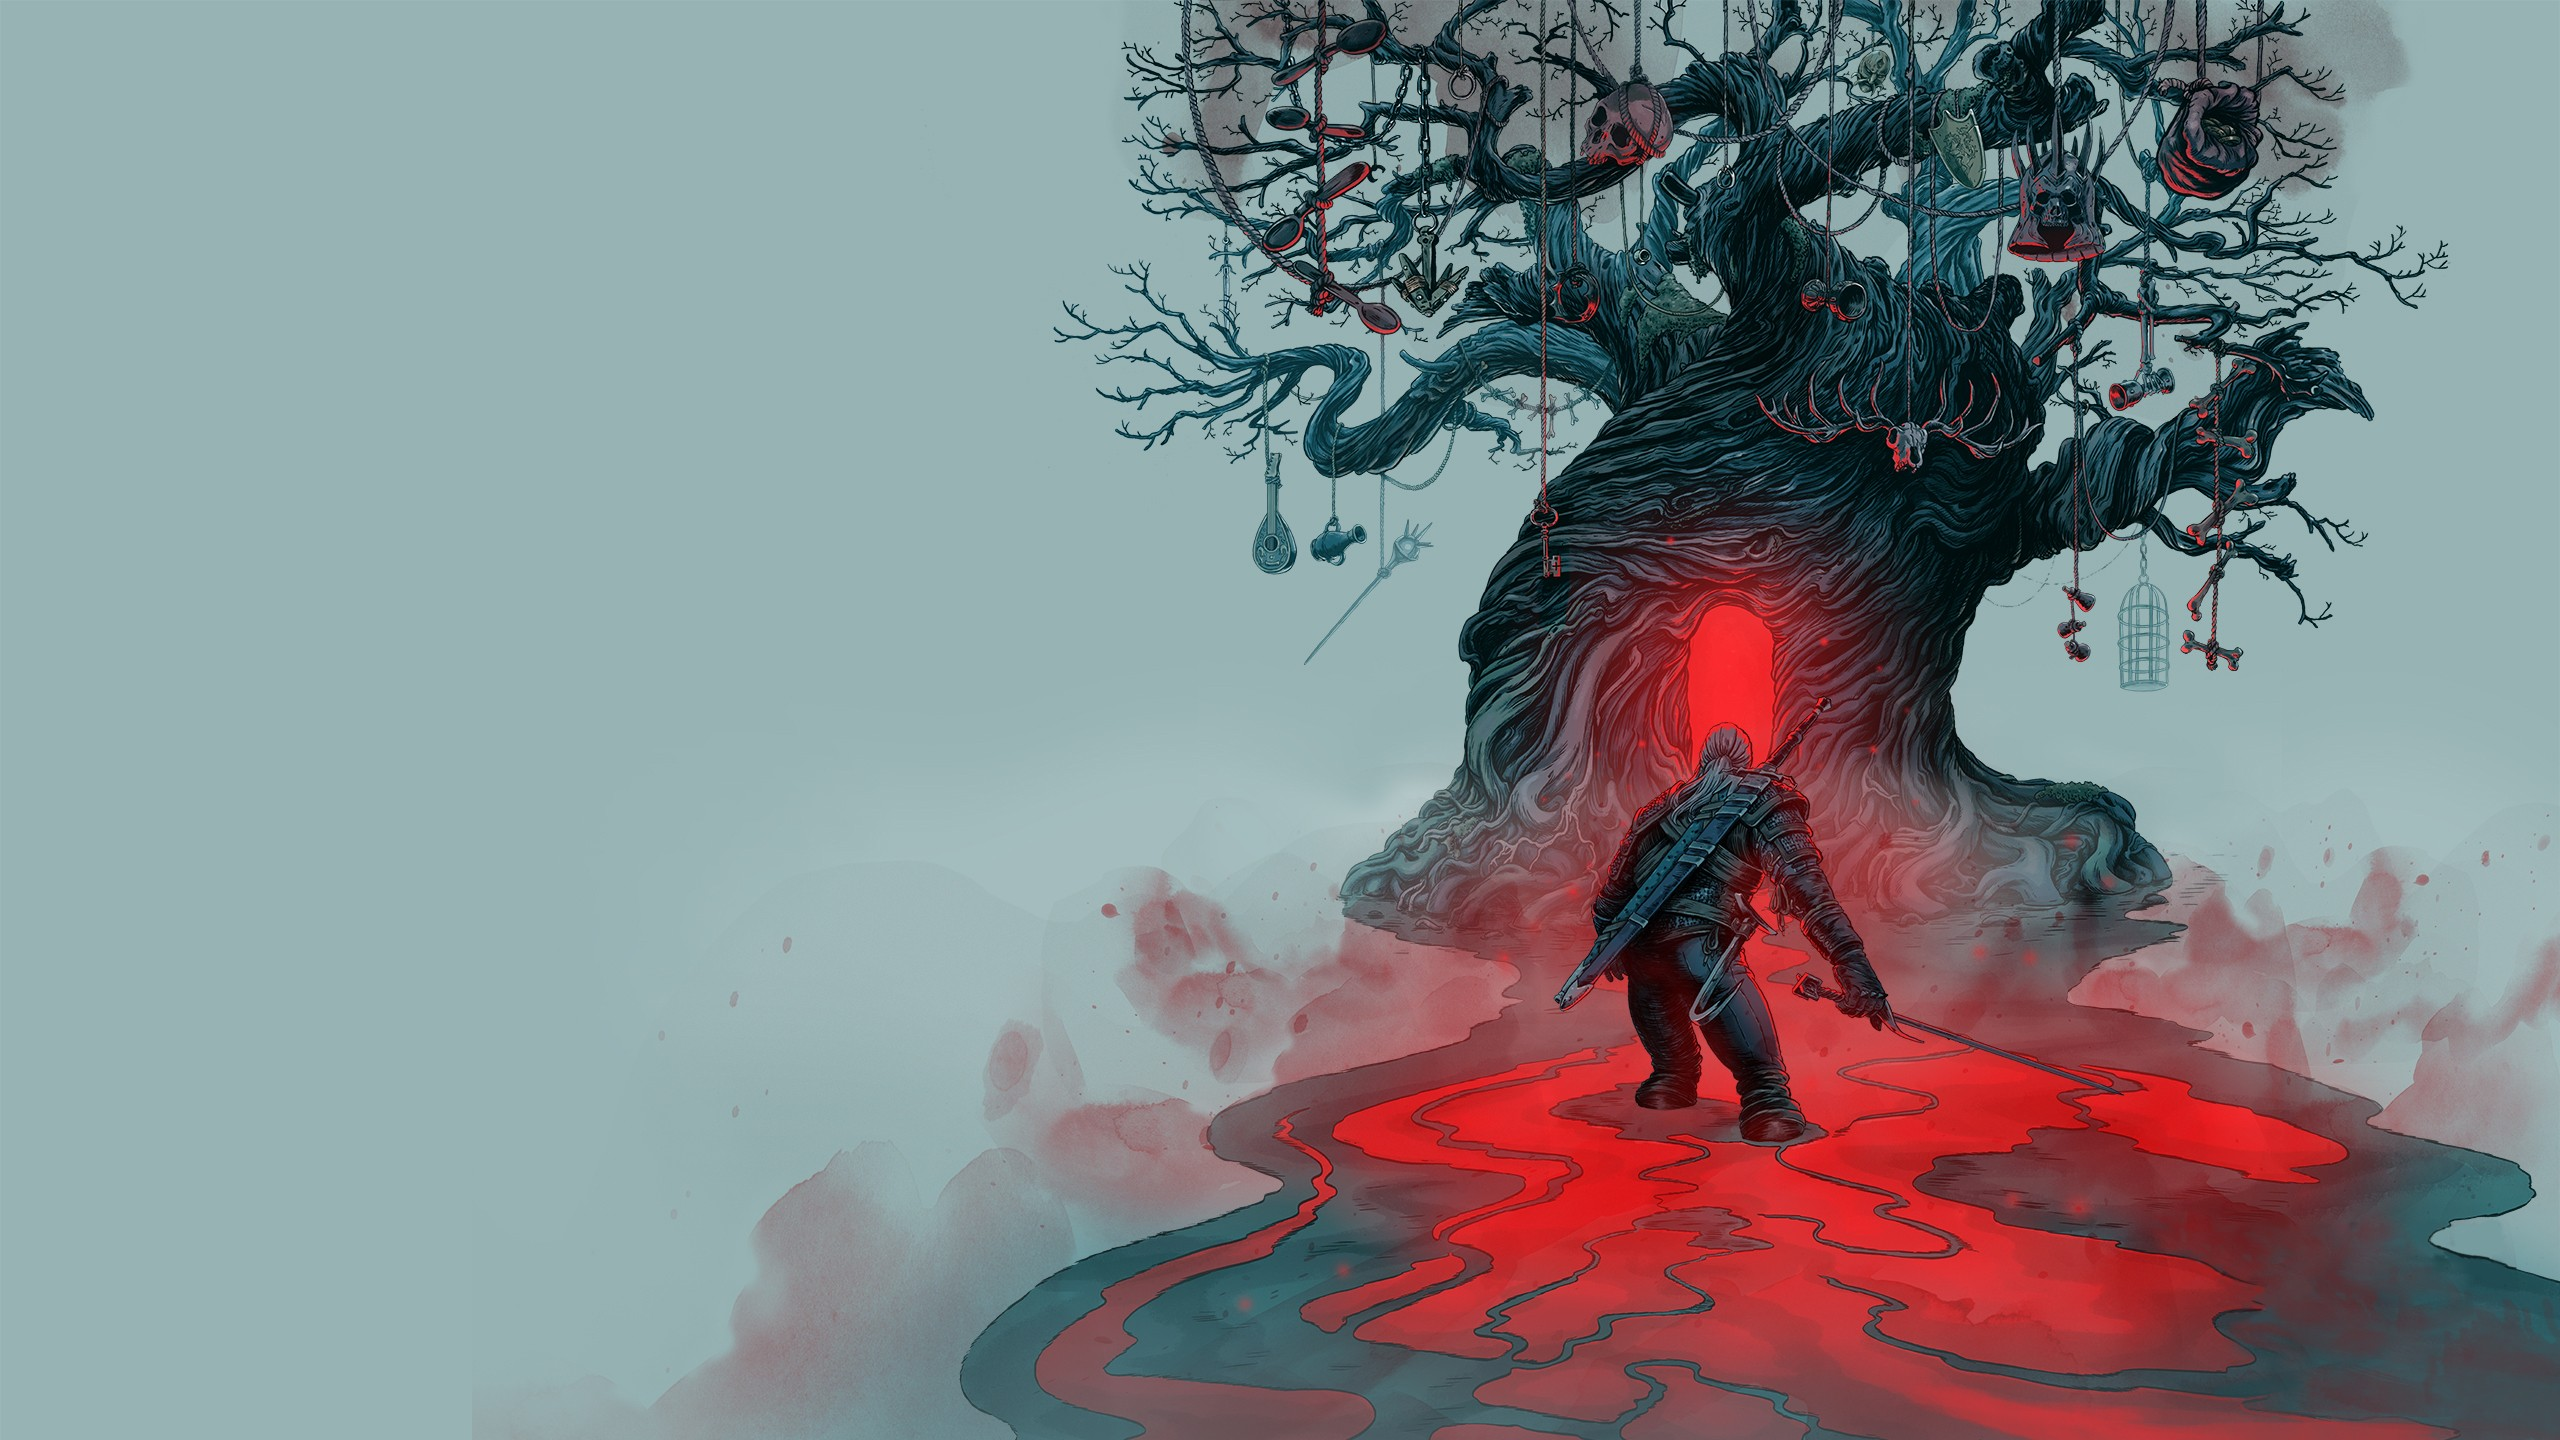 General 2560x1440 digital art nature landscape video games The Witcher 3: Wild Hunt trees skull ropes sword warrior Geralt of Rivia The Witcher spoons keys bones red